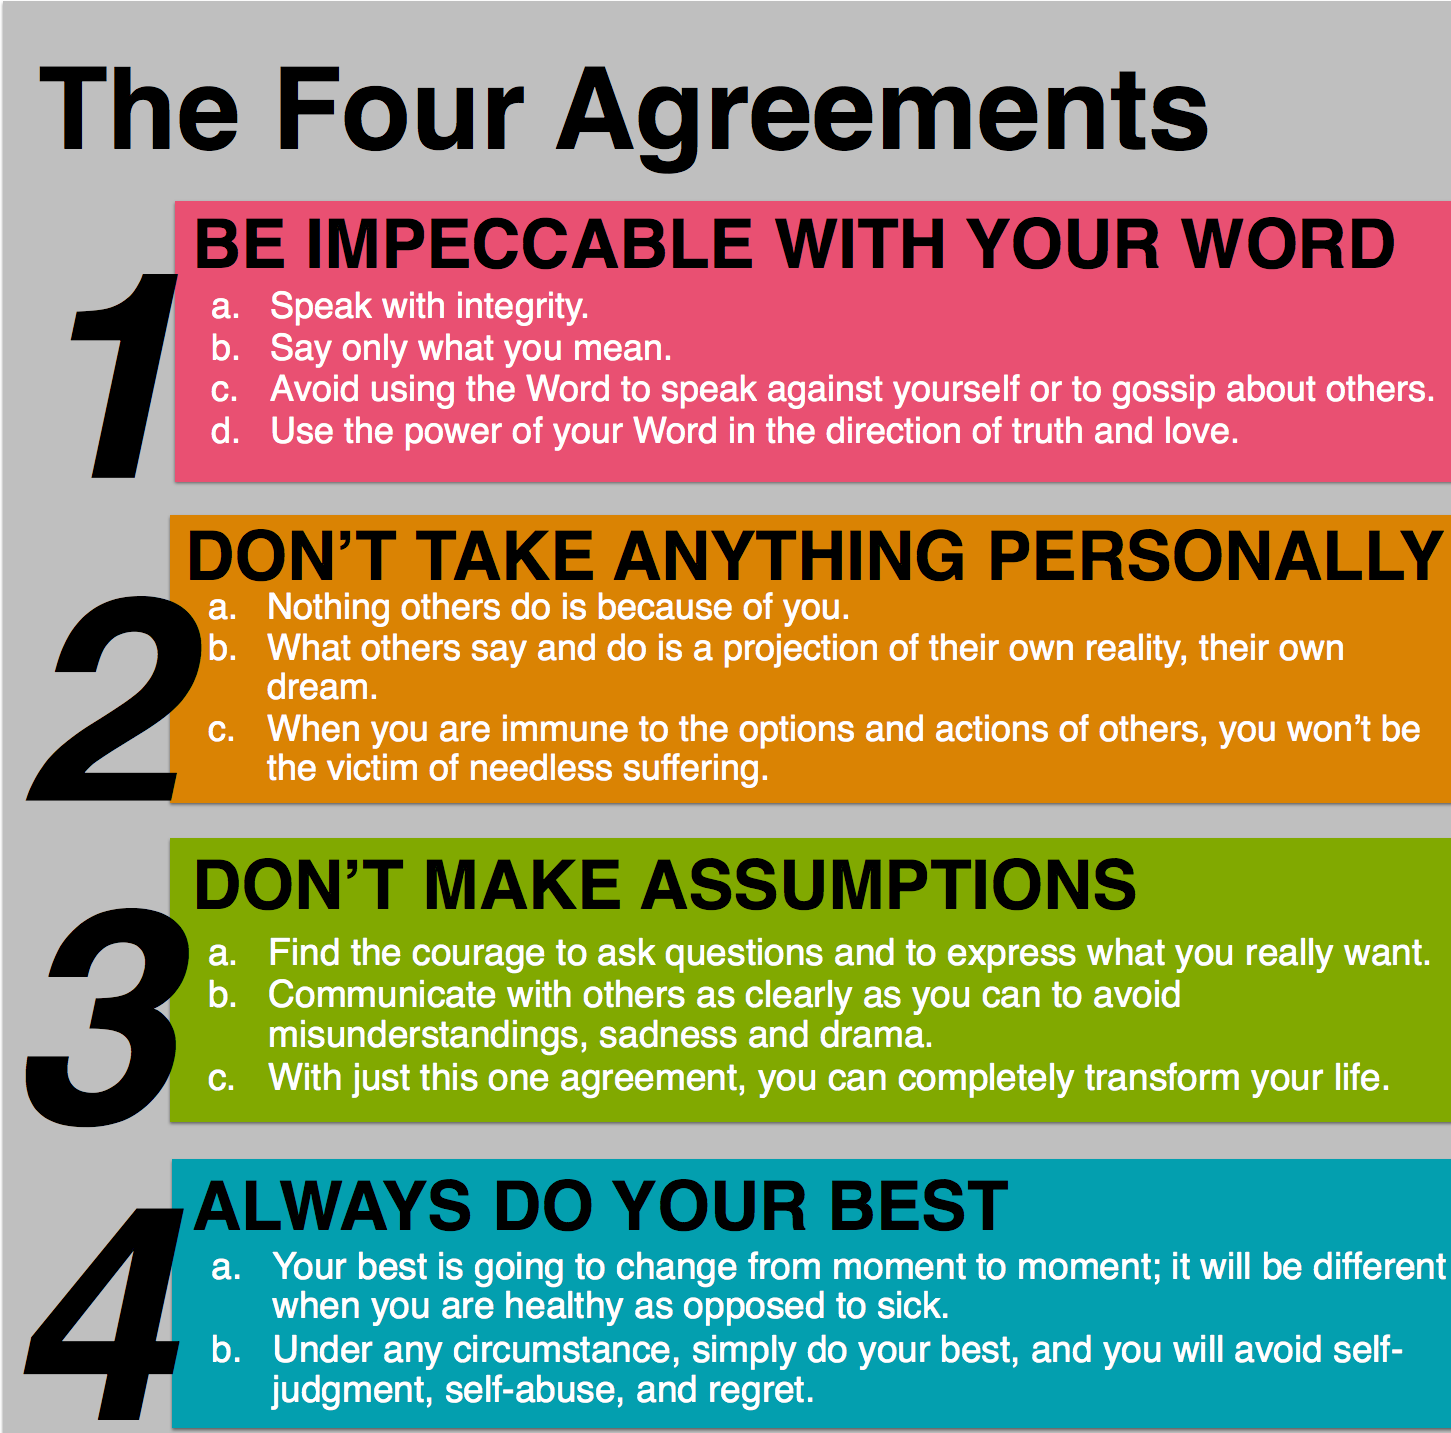 4 agreements.png